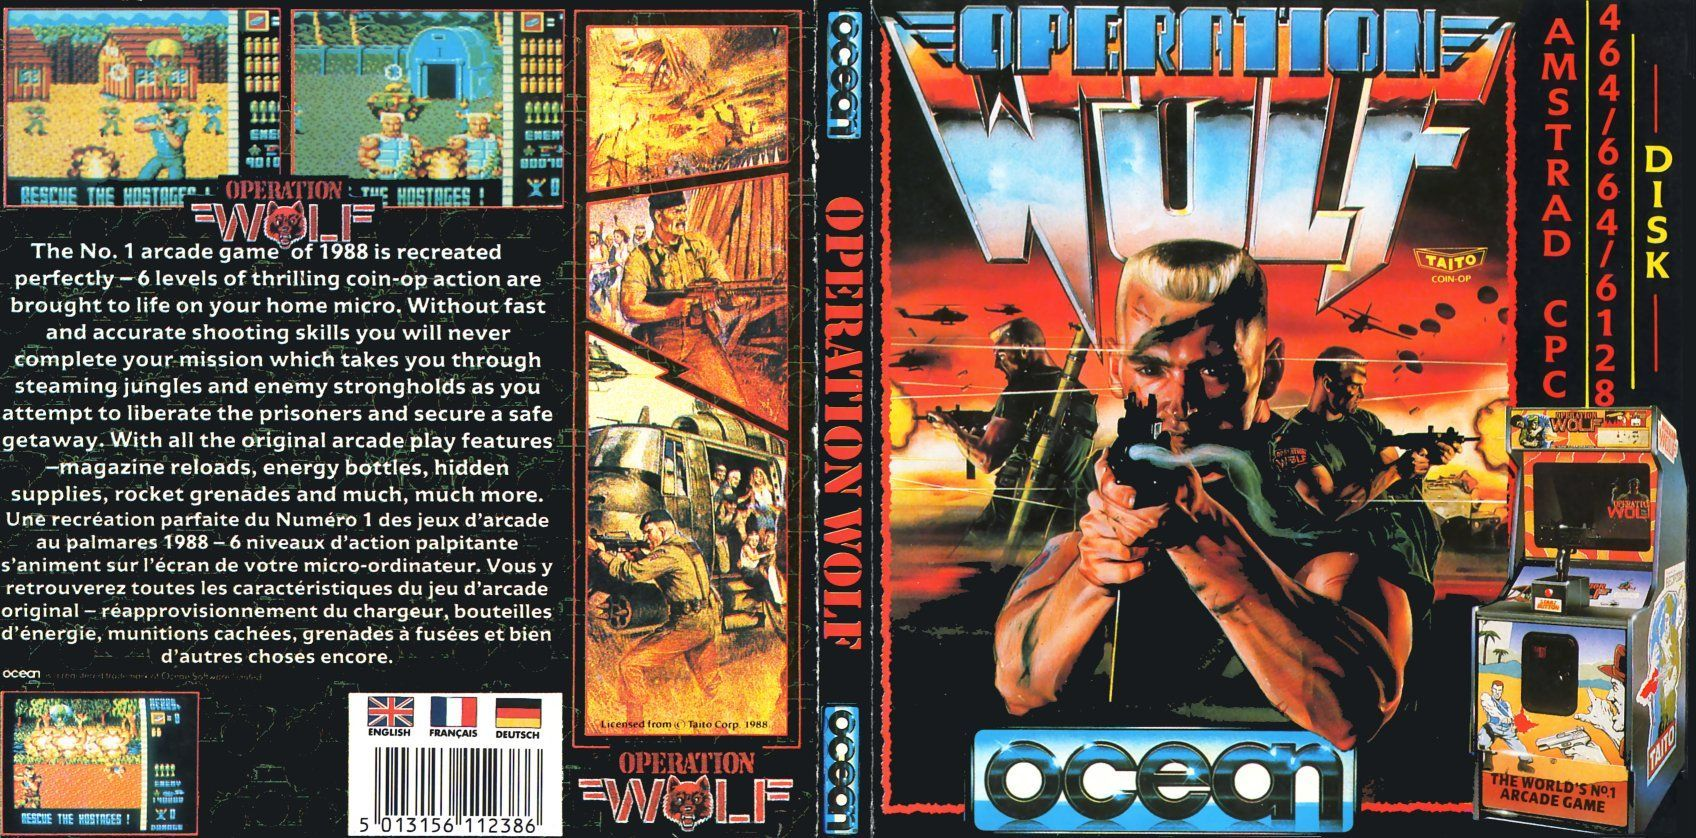 cover of the Amstrad CPC game operation_wolf by Mig